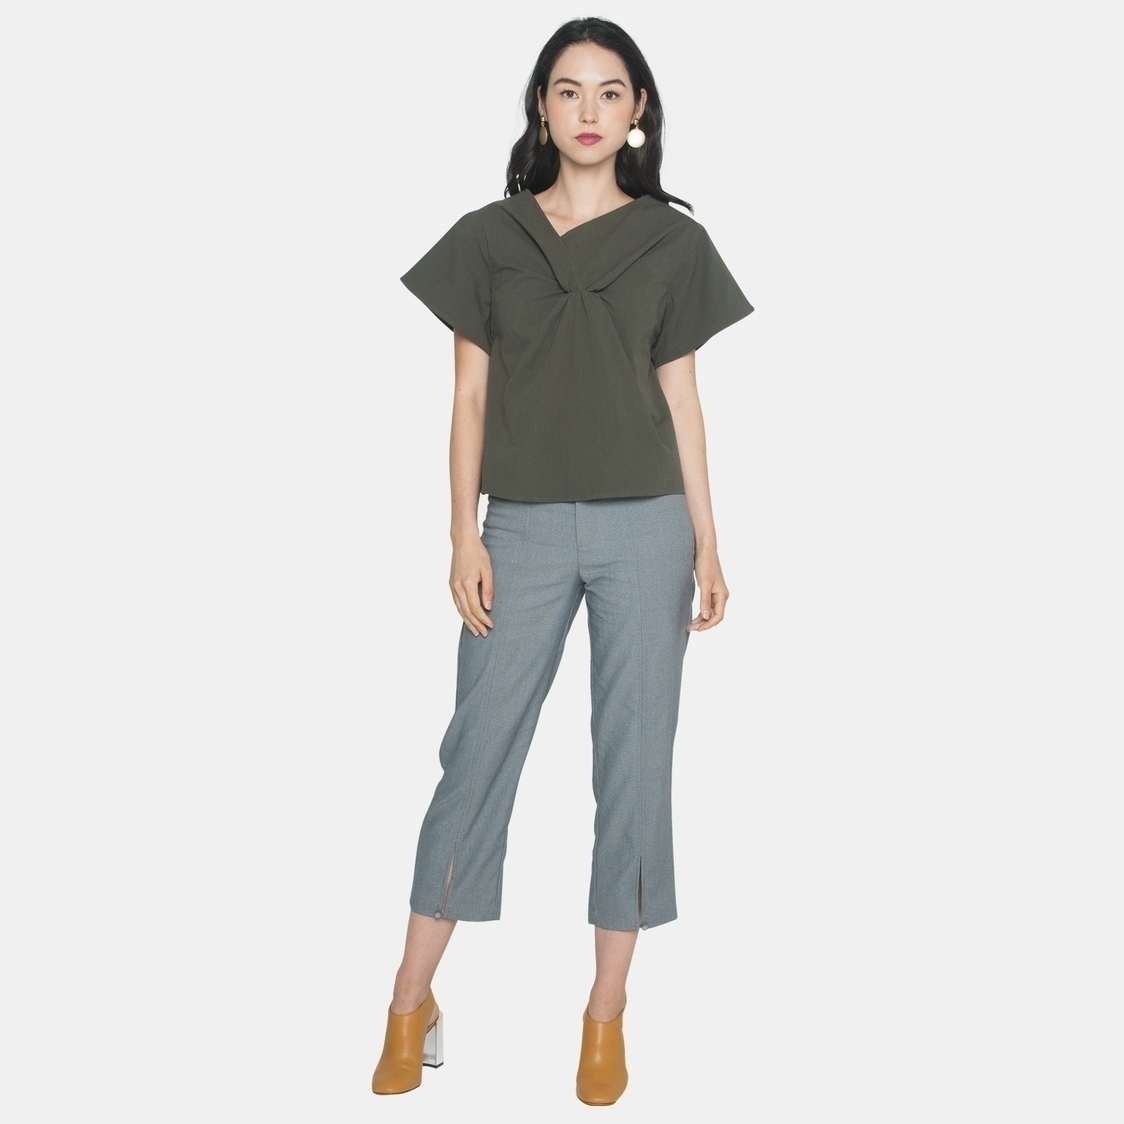 Ellysage Front Knot Shirt in Olive